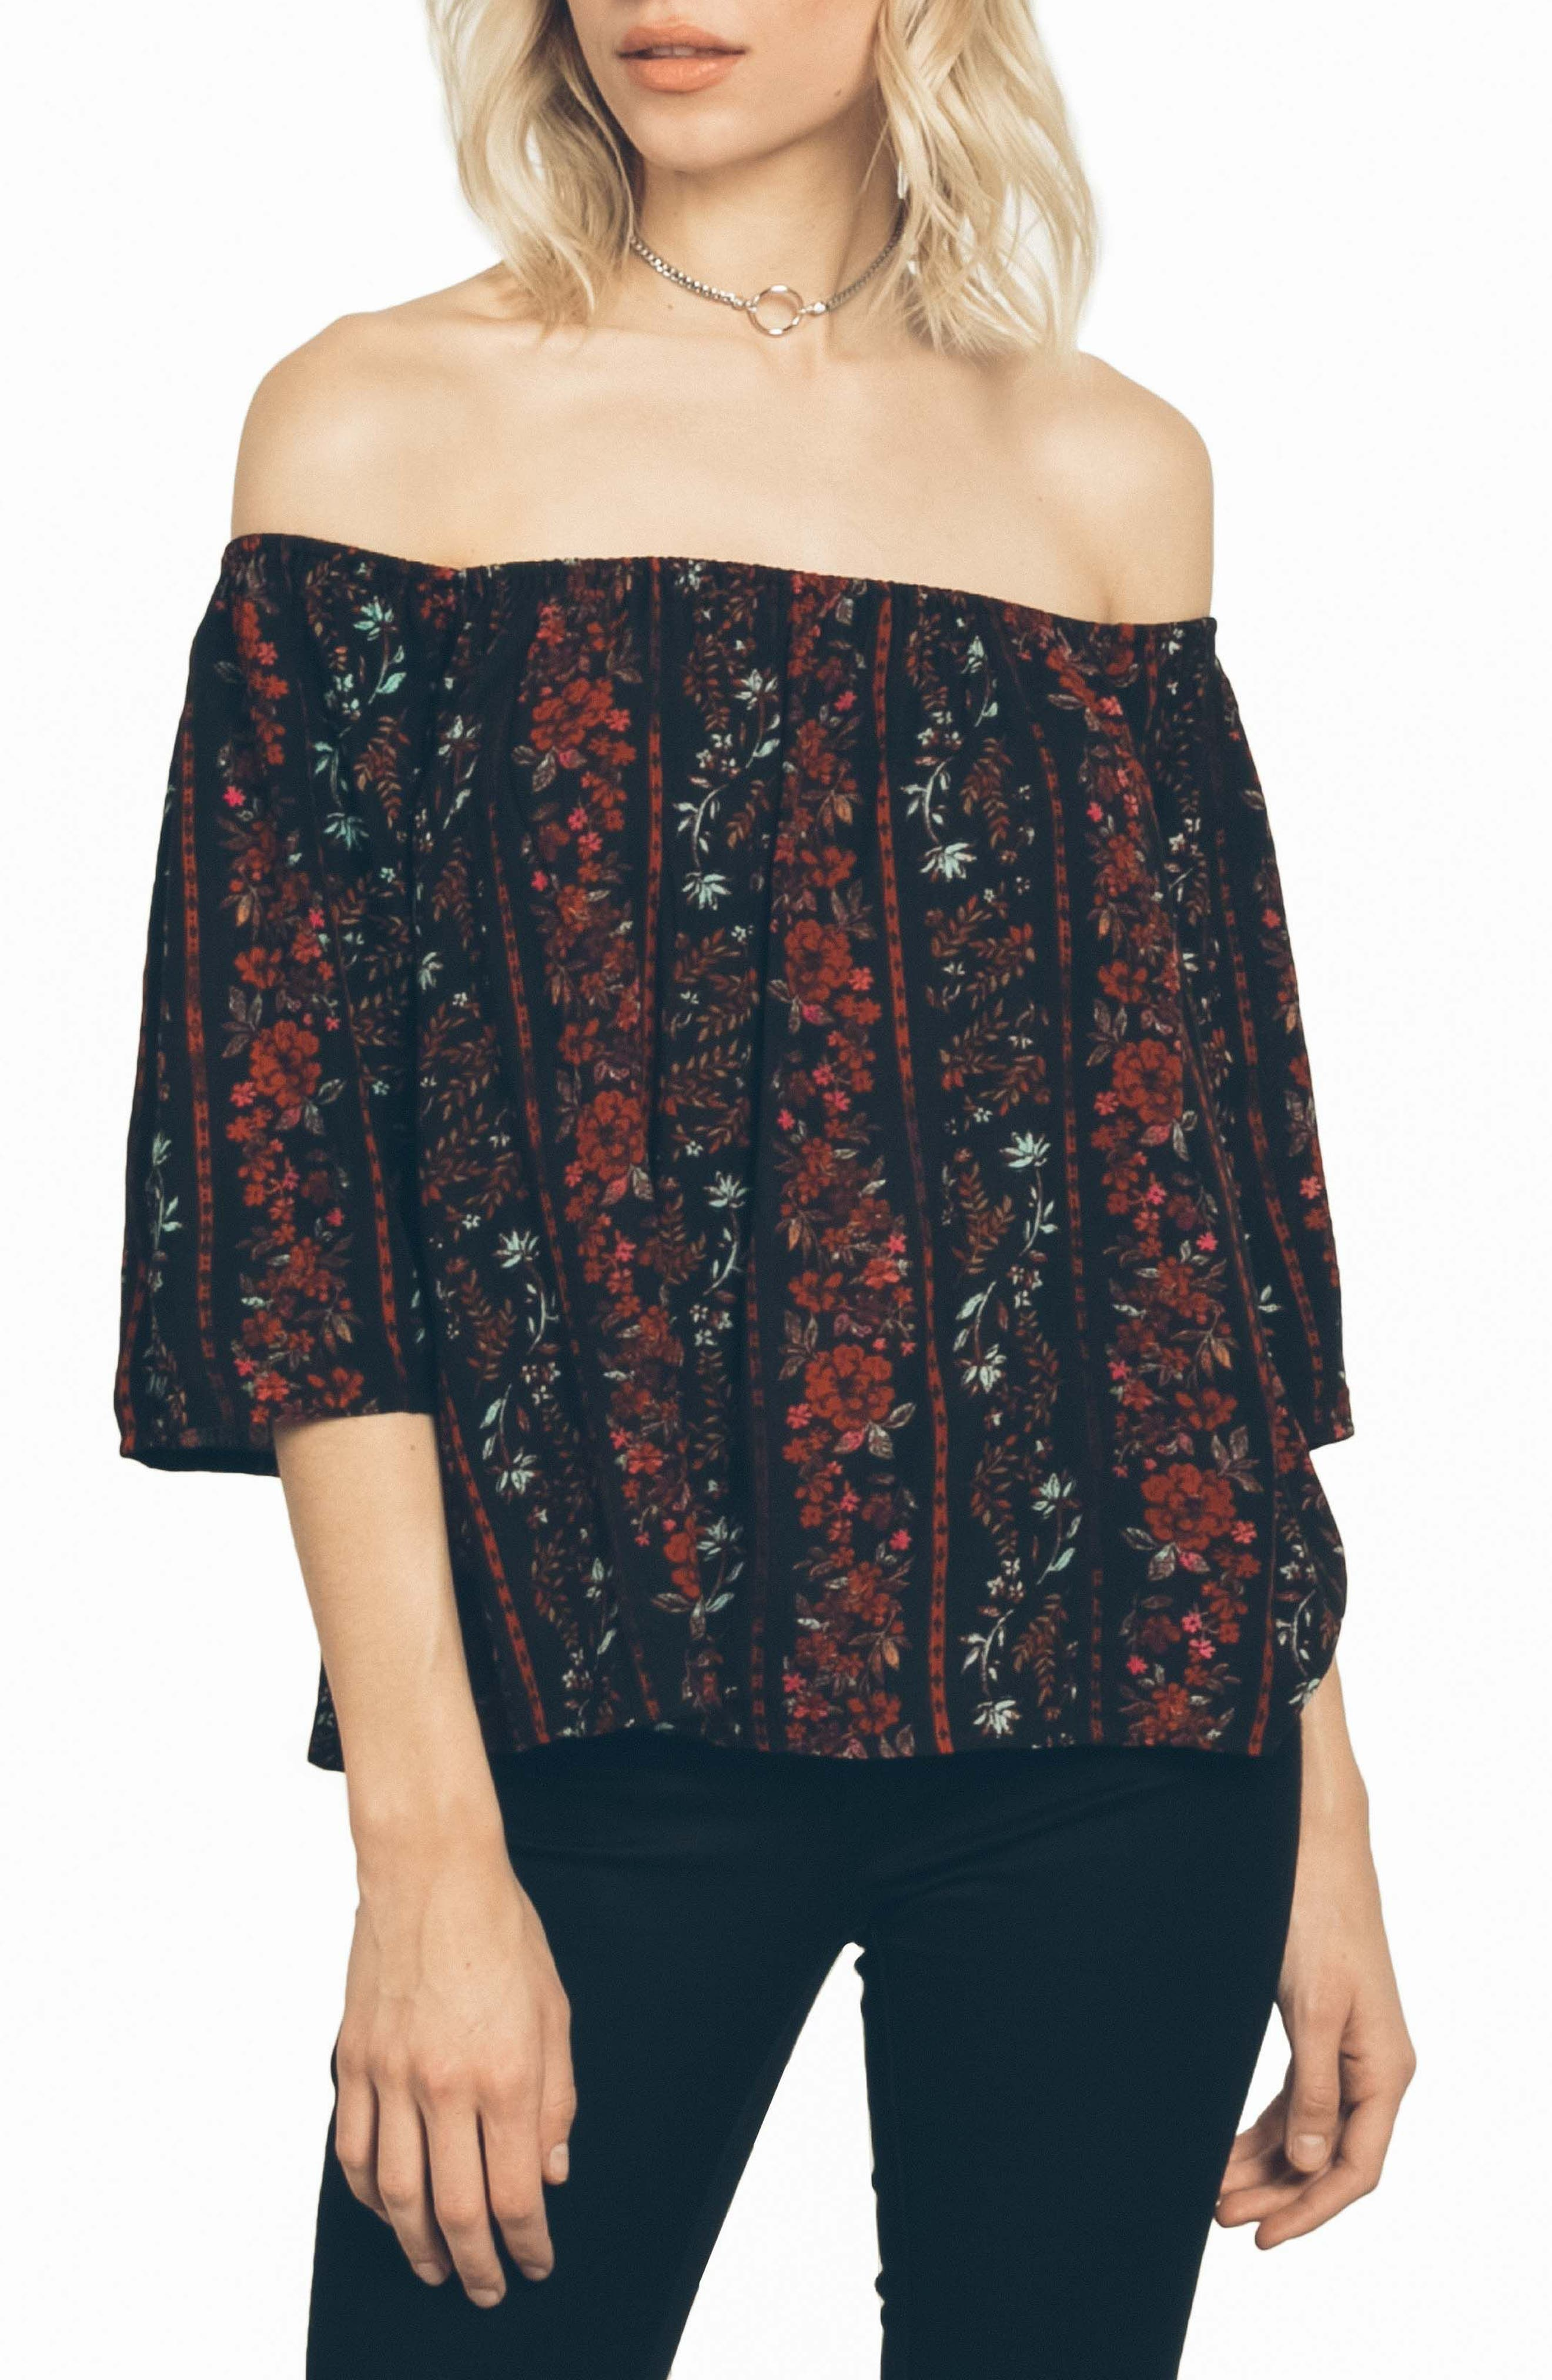 Fresh As Off the Shoulder Top,                         Main,                         color, Black Combo